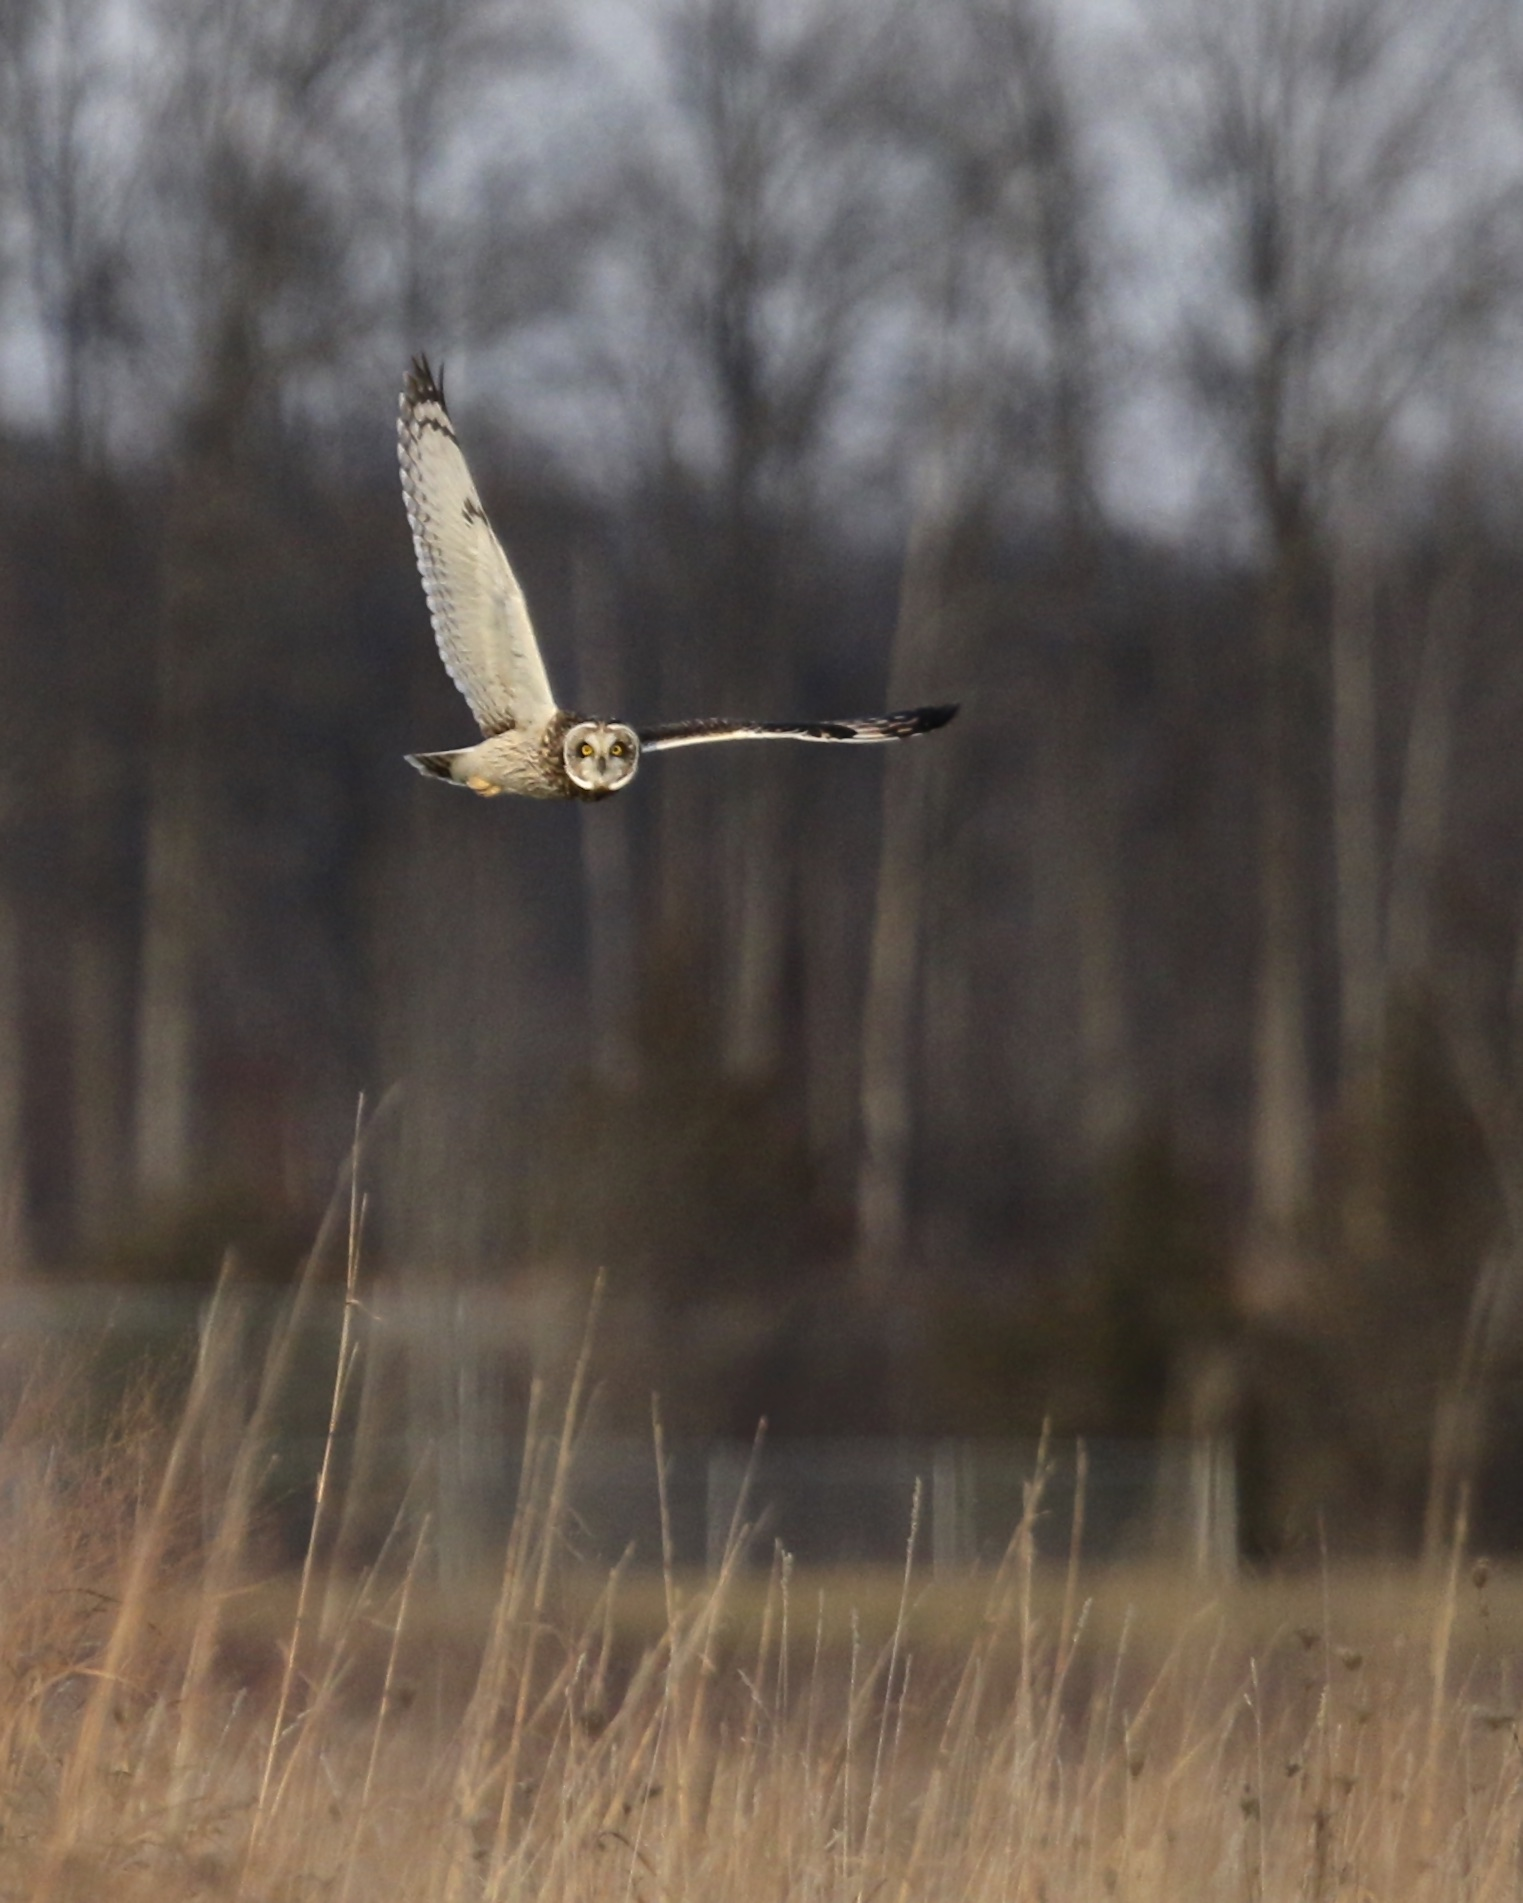 ~Short-eared Owl hunting over the Shawangunk Grasslands, 12/20/15.~